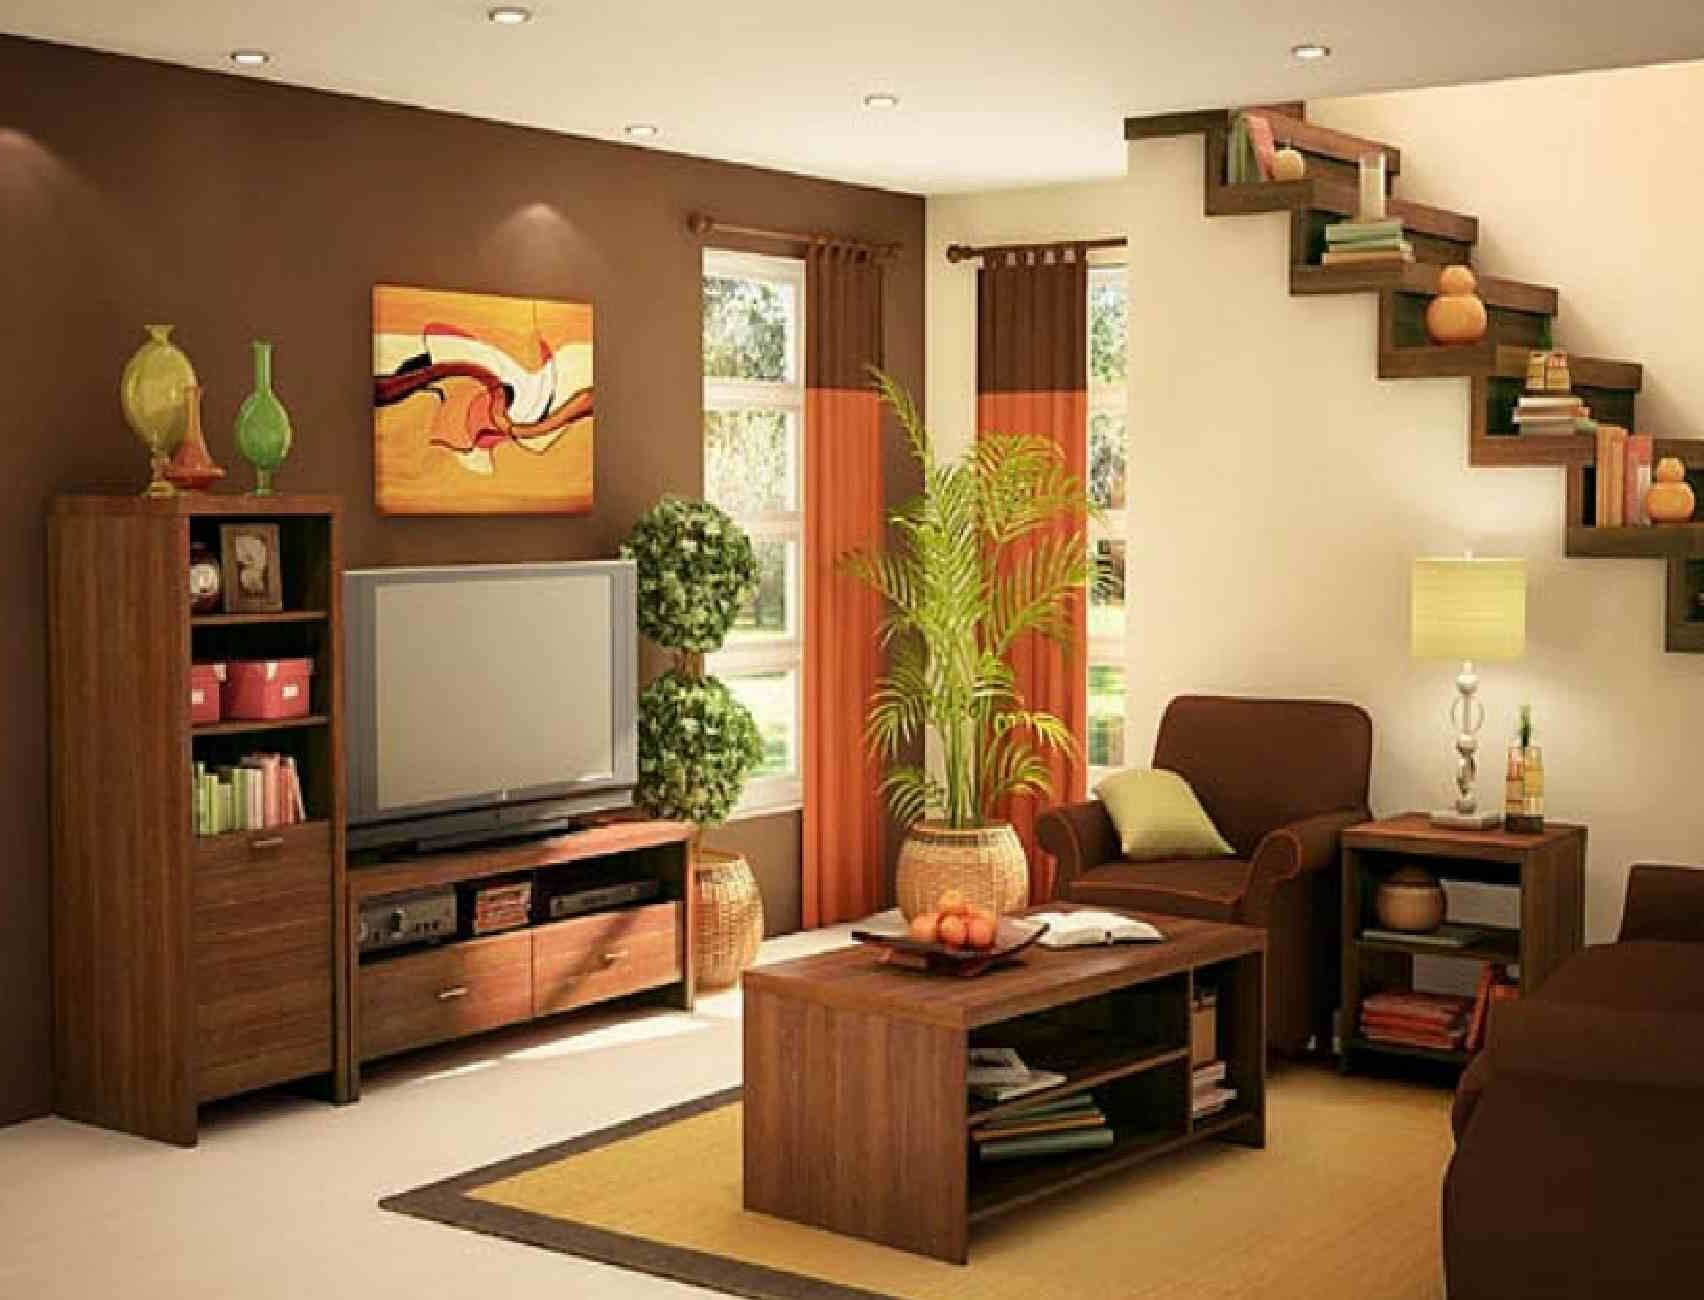 Attractive Interior Designs For Small Houses In the ... on House Interior Ideas  id=51531